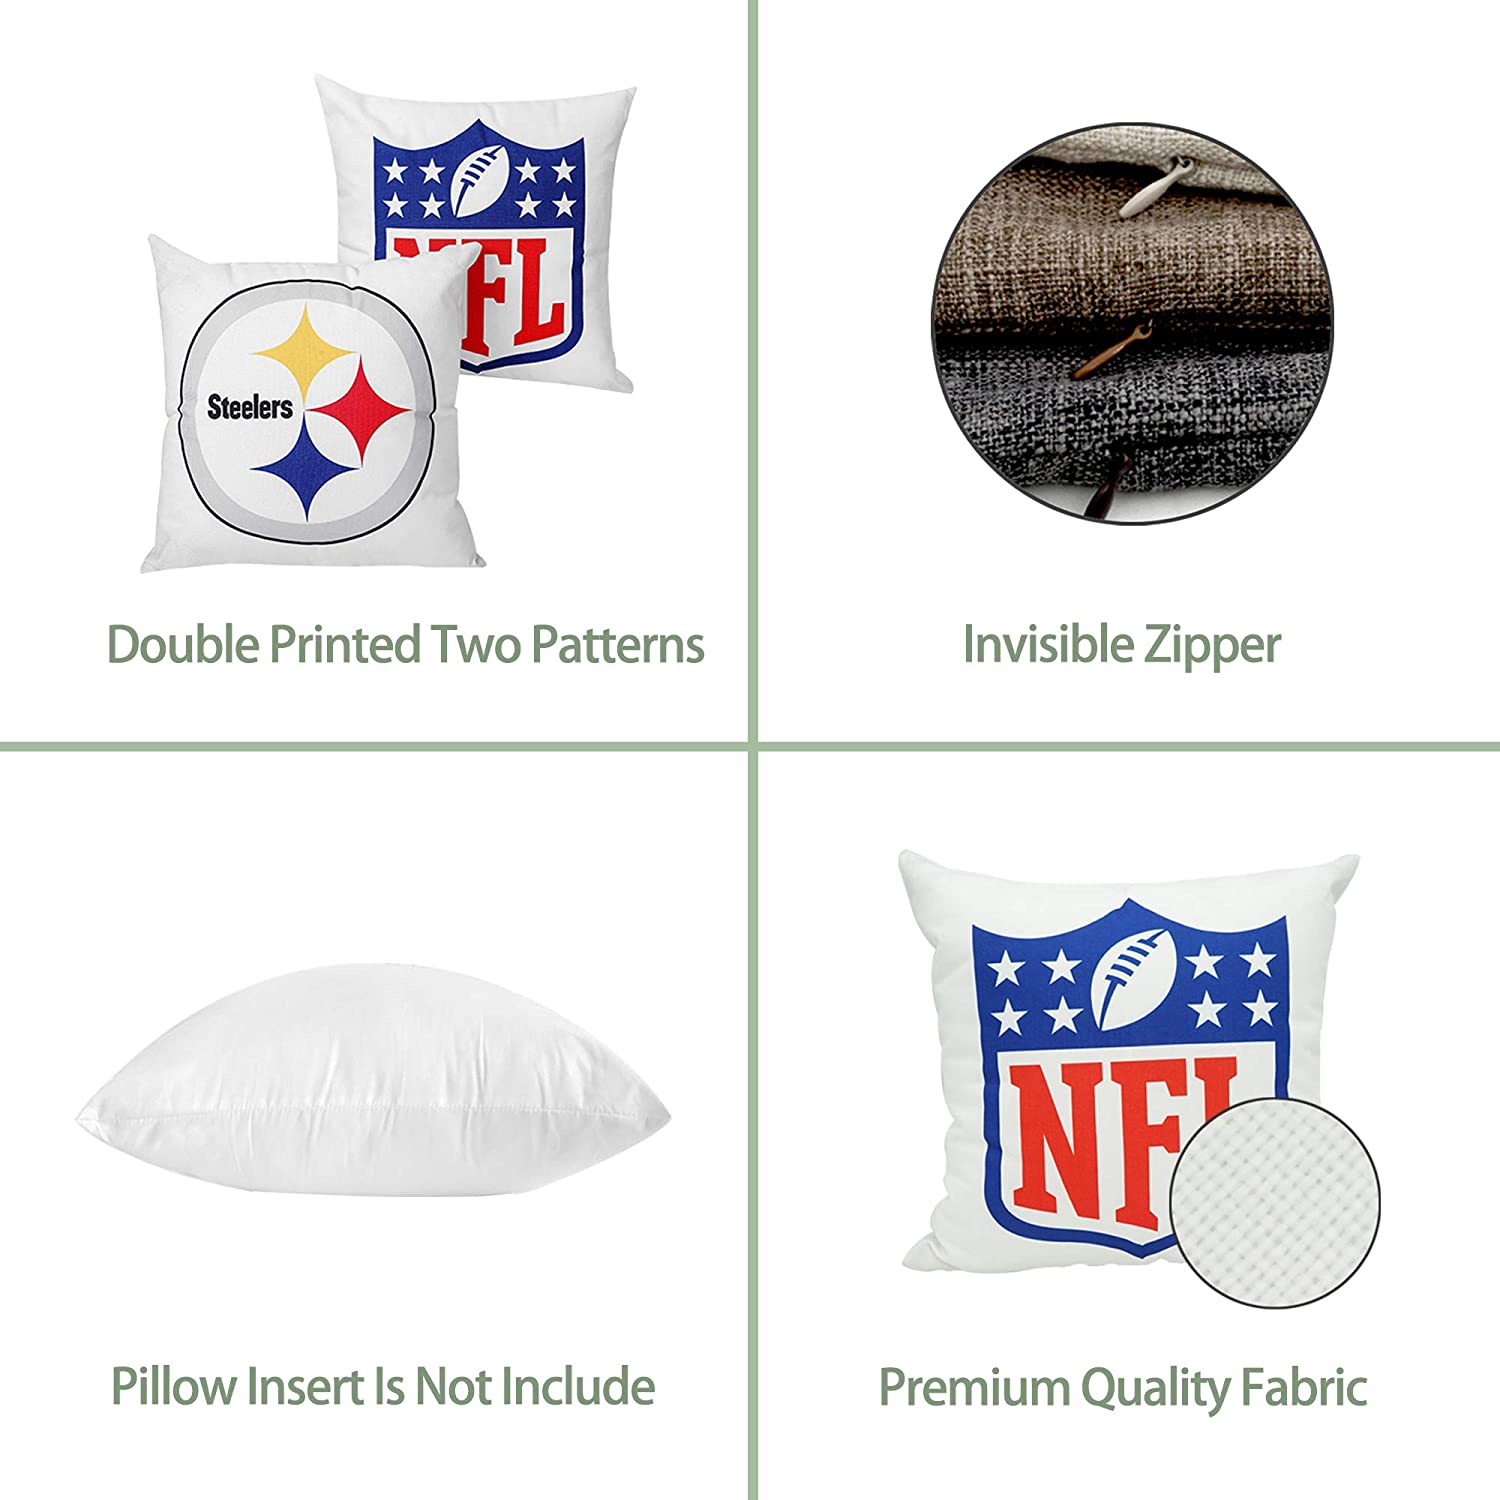 Xifan Pack of 2 Football Team Throw Pillow Cover Soft Cotton Linen Decorative Pillowcase for Pittsburgh Steelers/Team Double Printed with 2 Patterns Without Insert 18 x 18 Inches